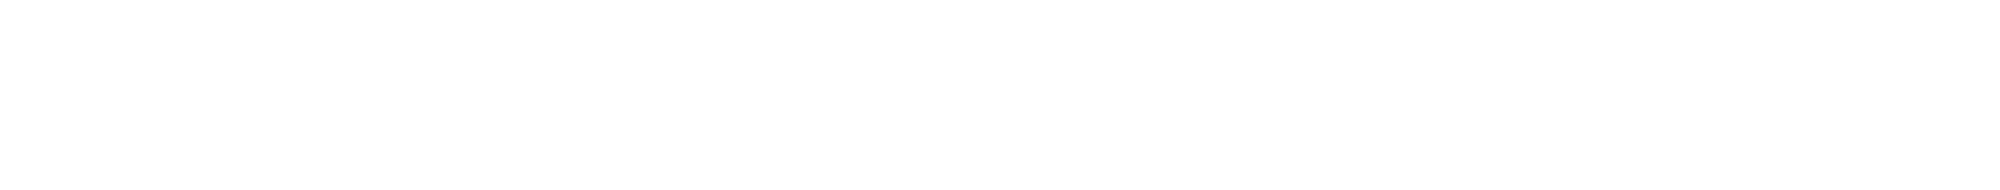 Schedule a Free Strategy Session